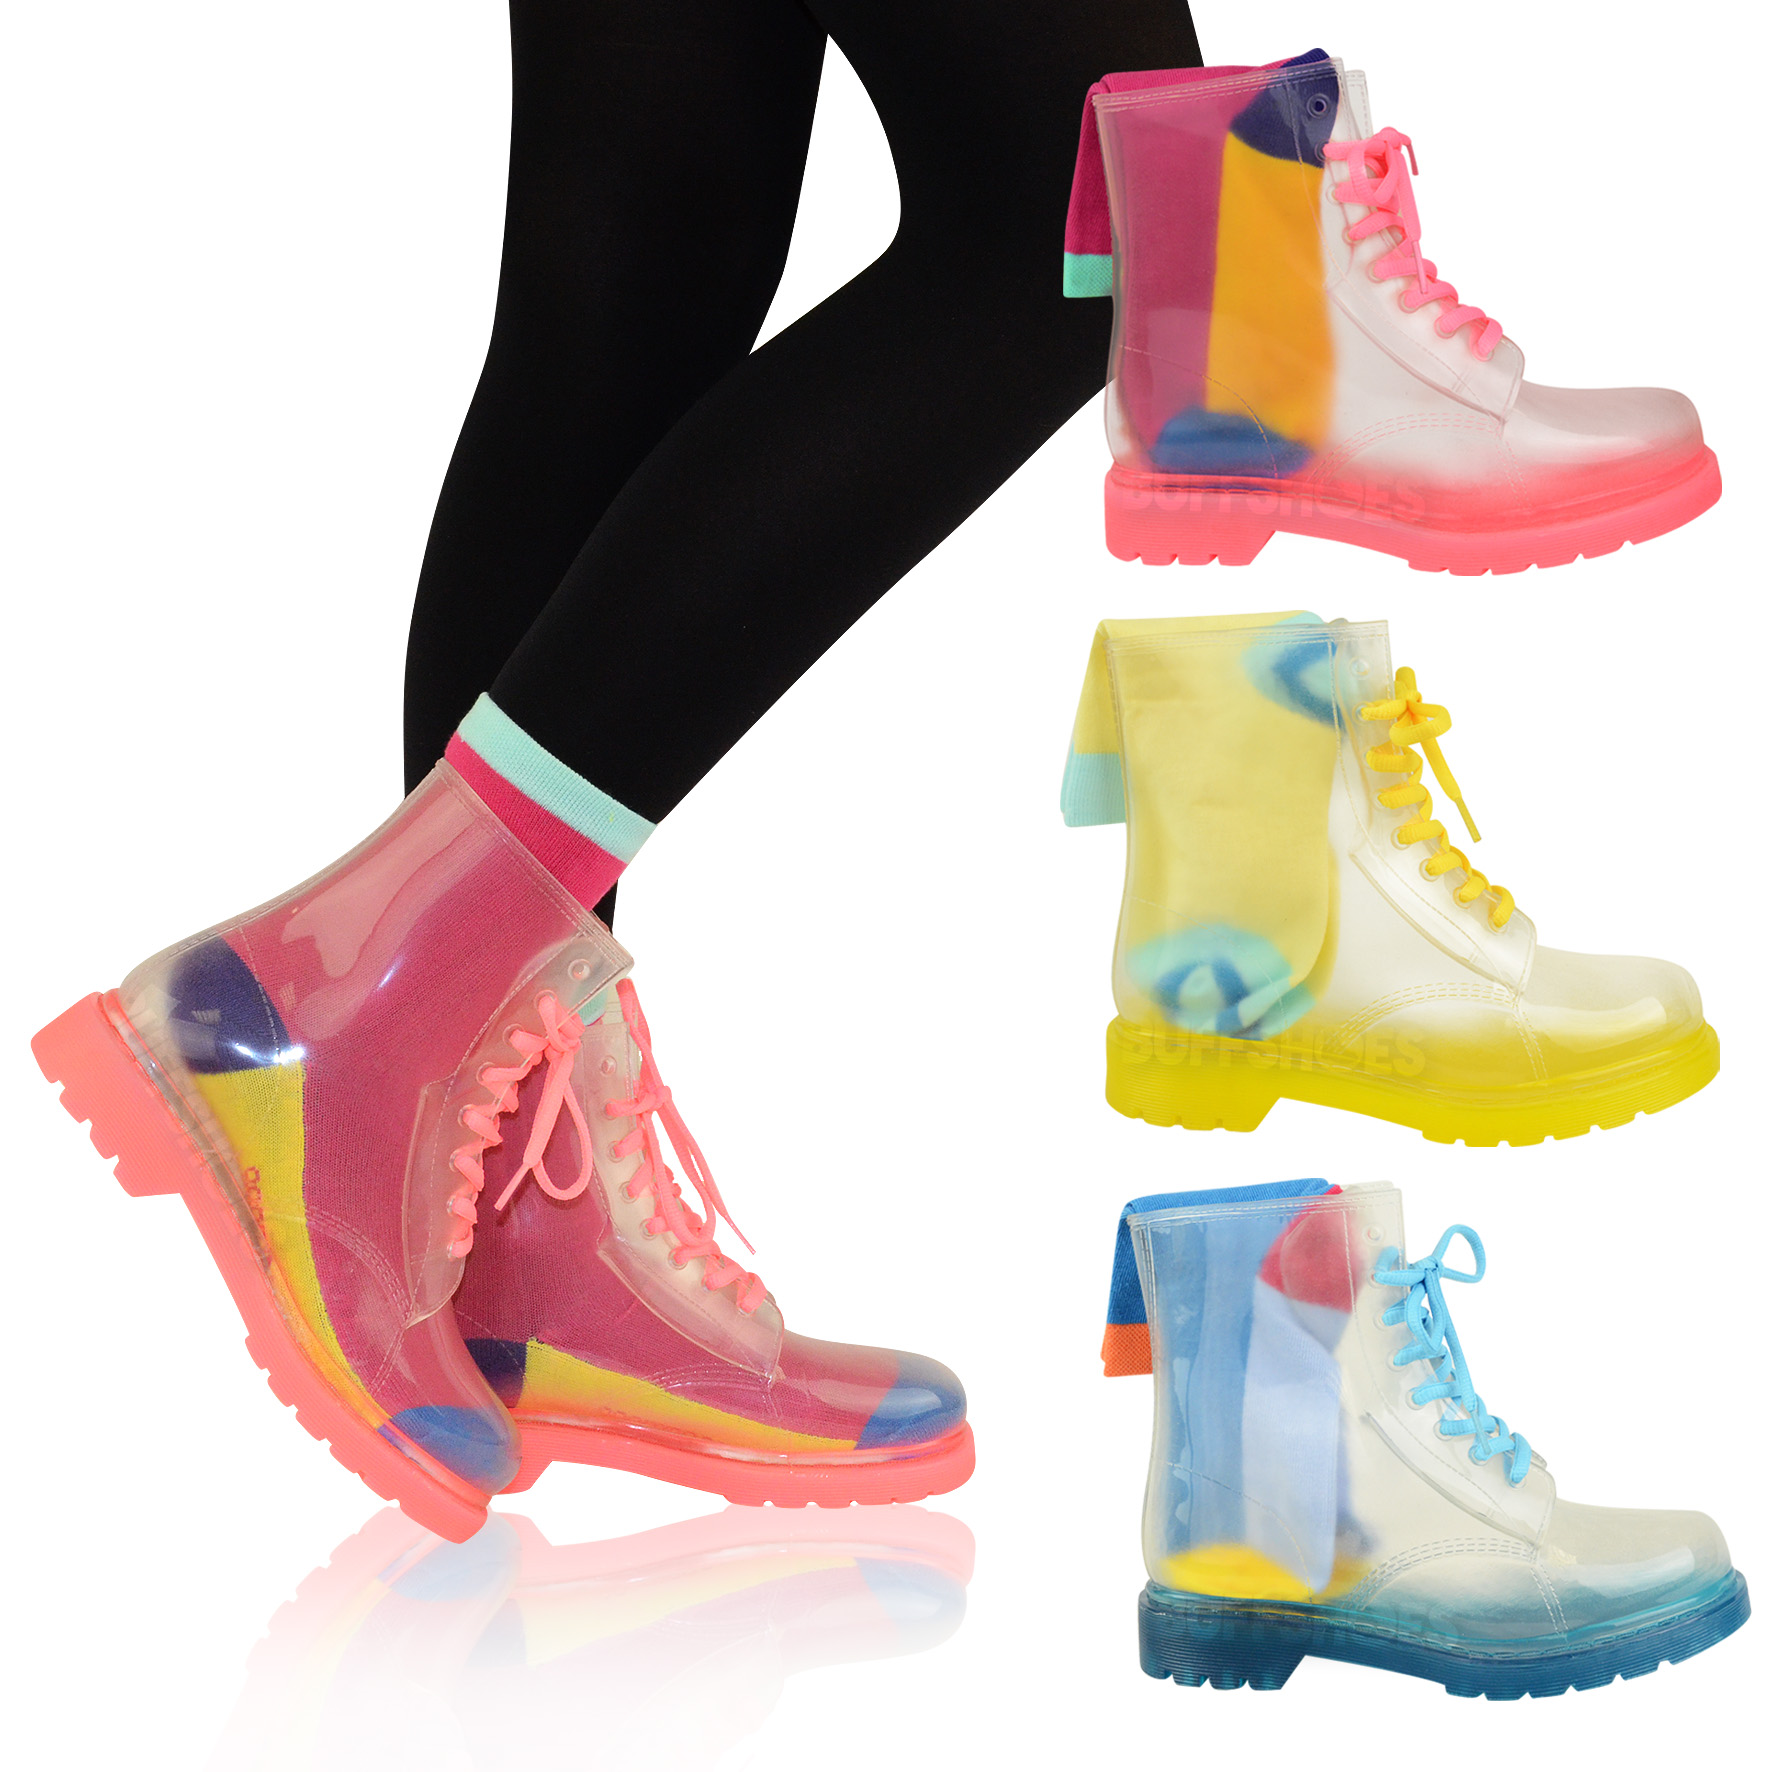 LADIES FLAT CLEAR FESTIVAL JELLY WELLIES LOW ANKLE RAIN BOOTS ...